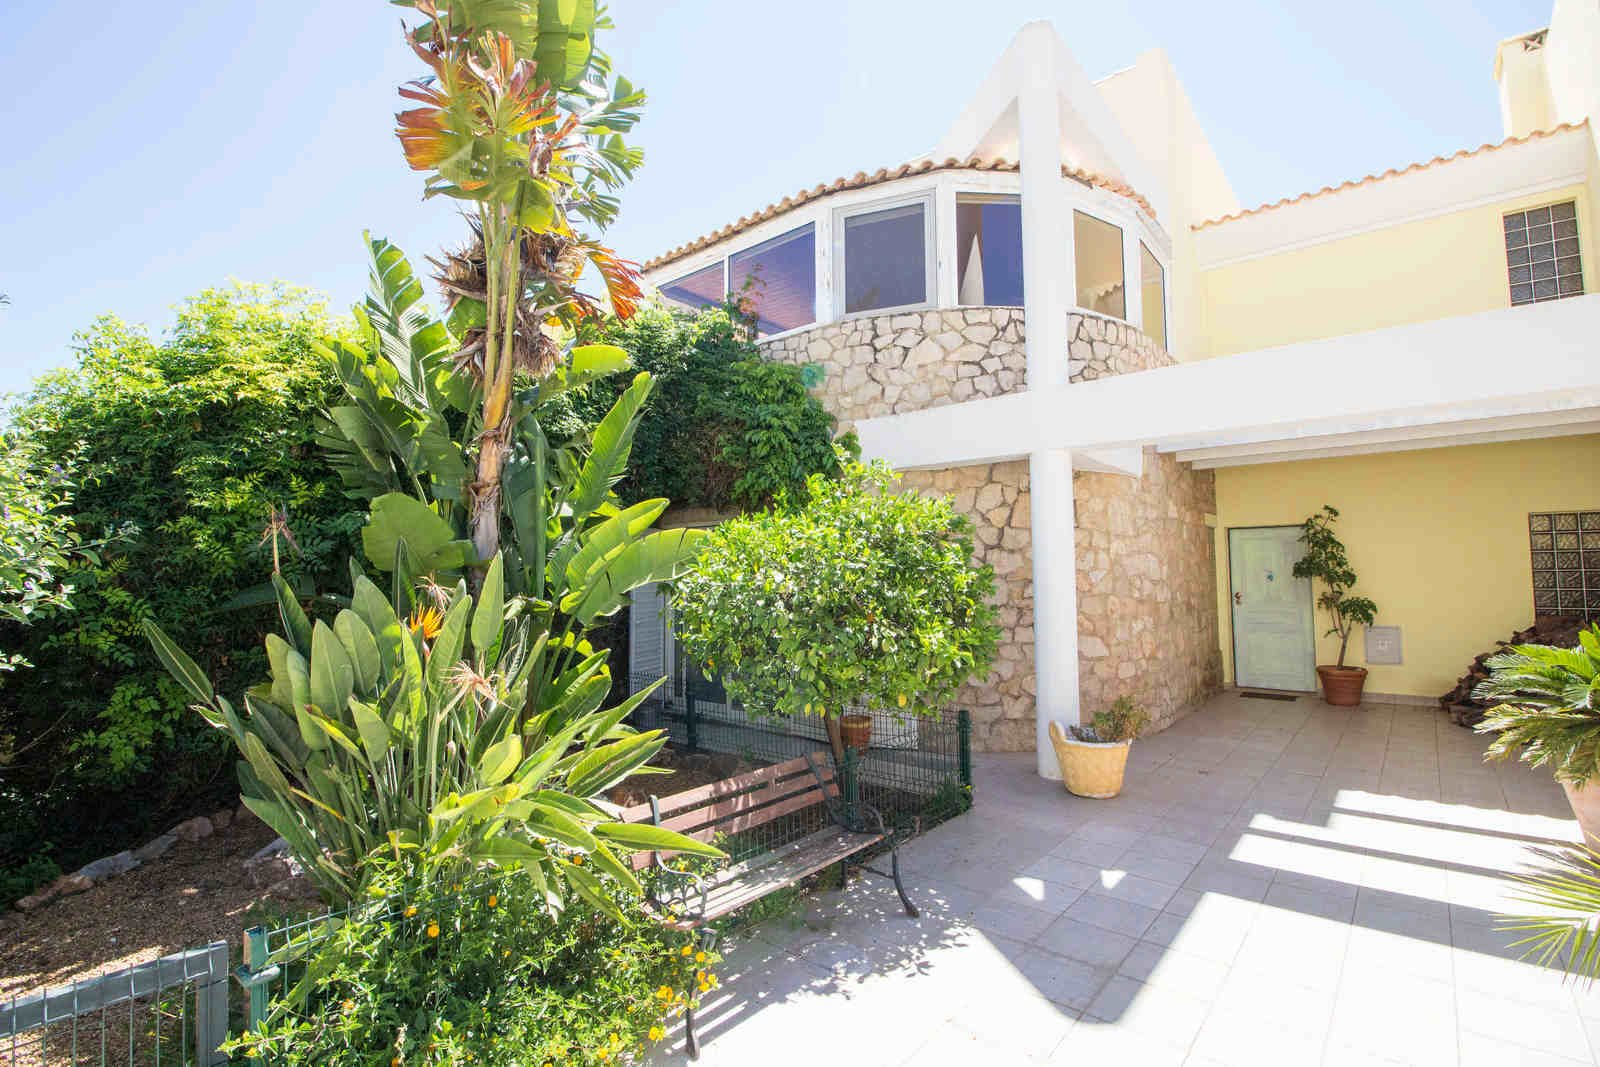 3 Bedroom Villa Loule, Central Algarve Ref: PV3479